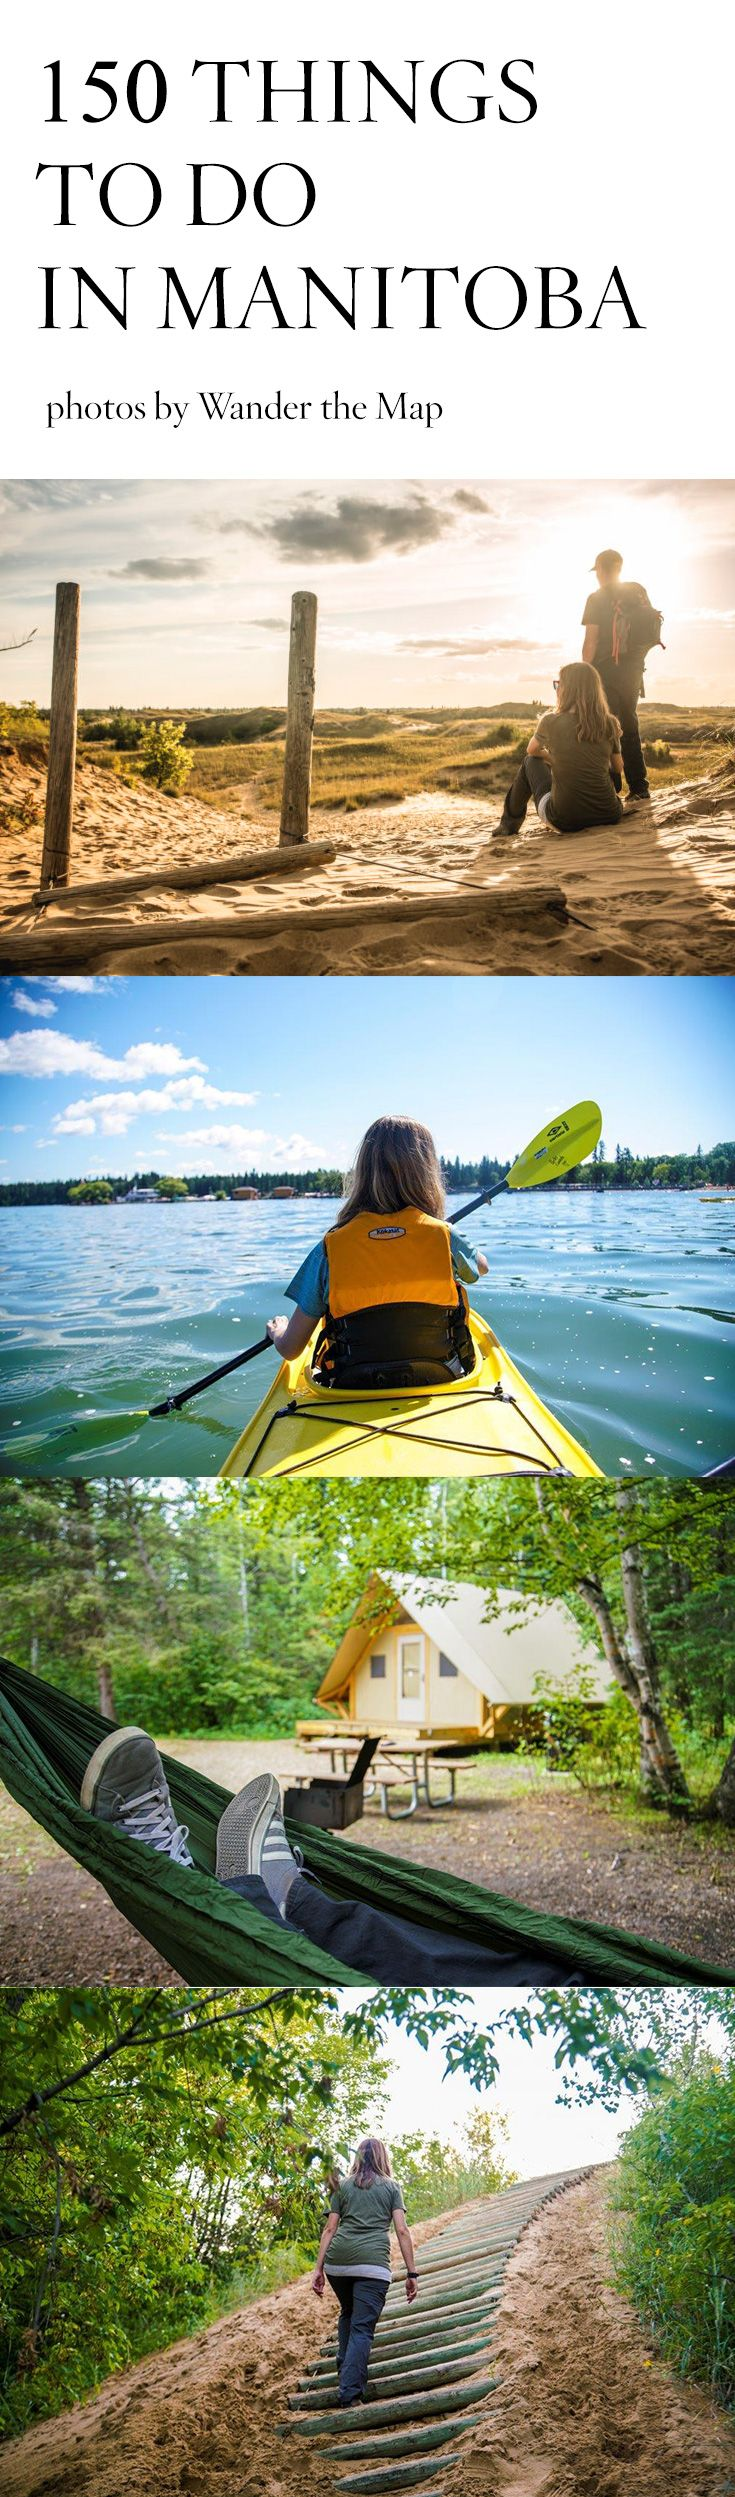 150 Things to do in Manitoba in 2017. #exploremb